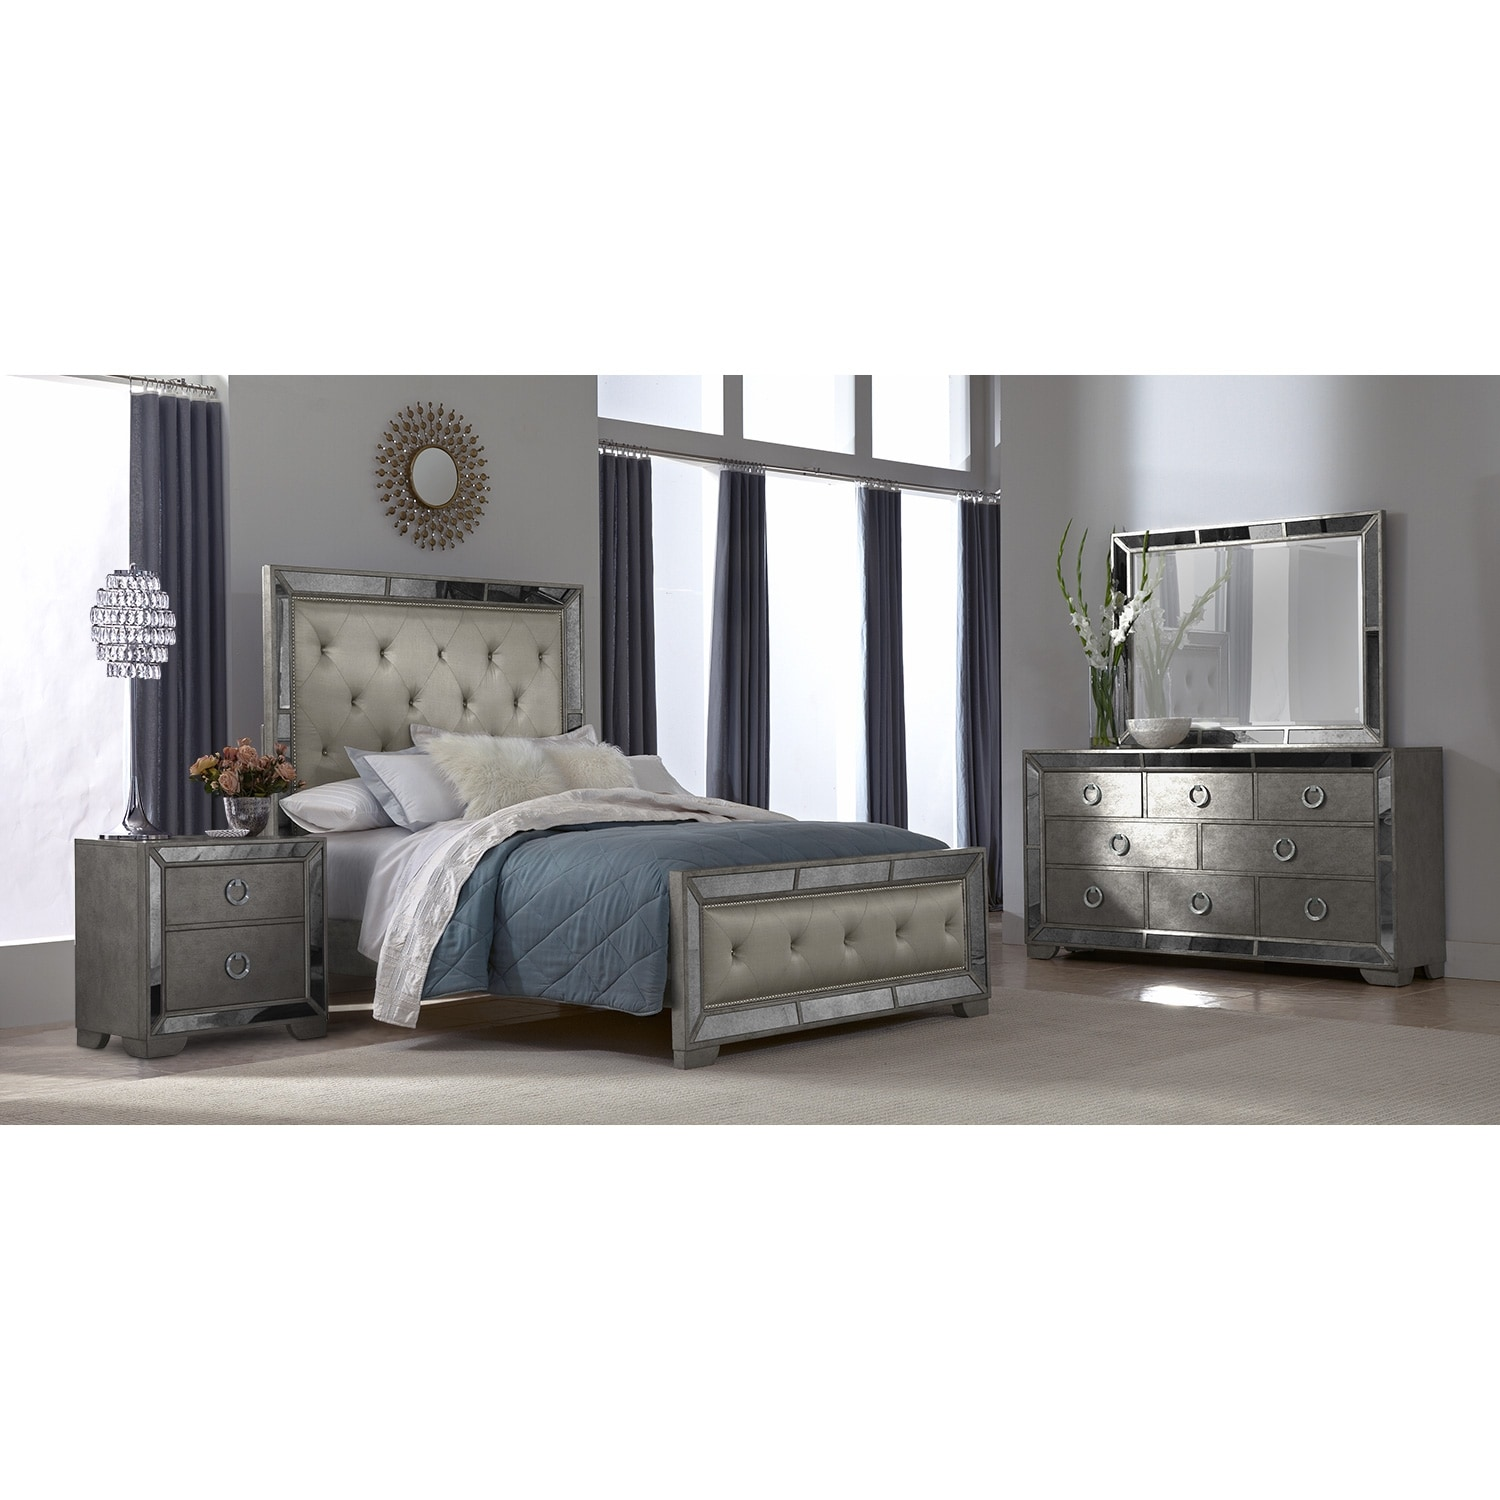 Angelina 6 Pc. Queen Bedroom